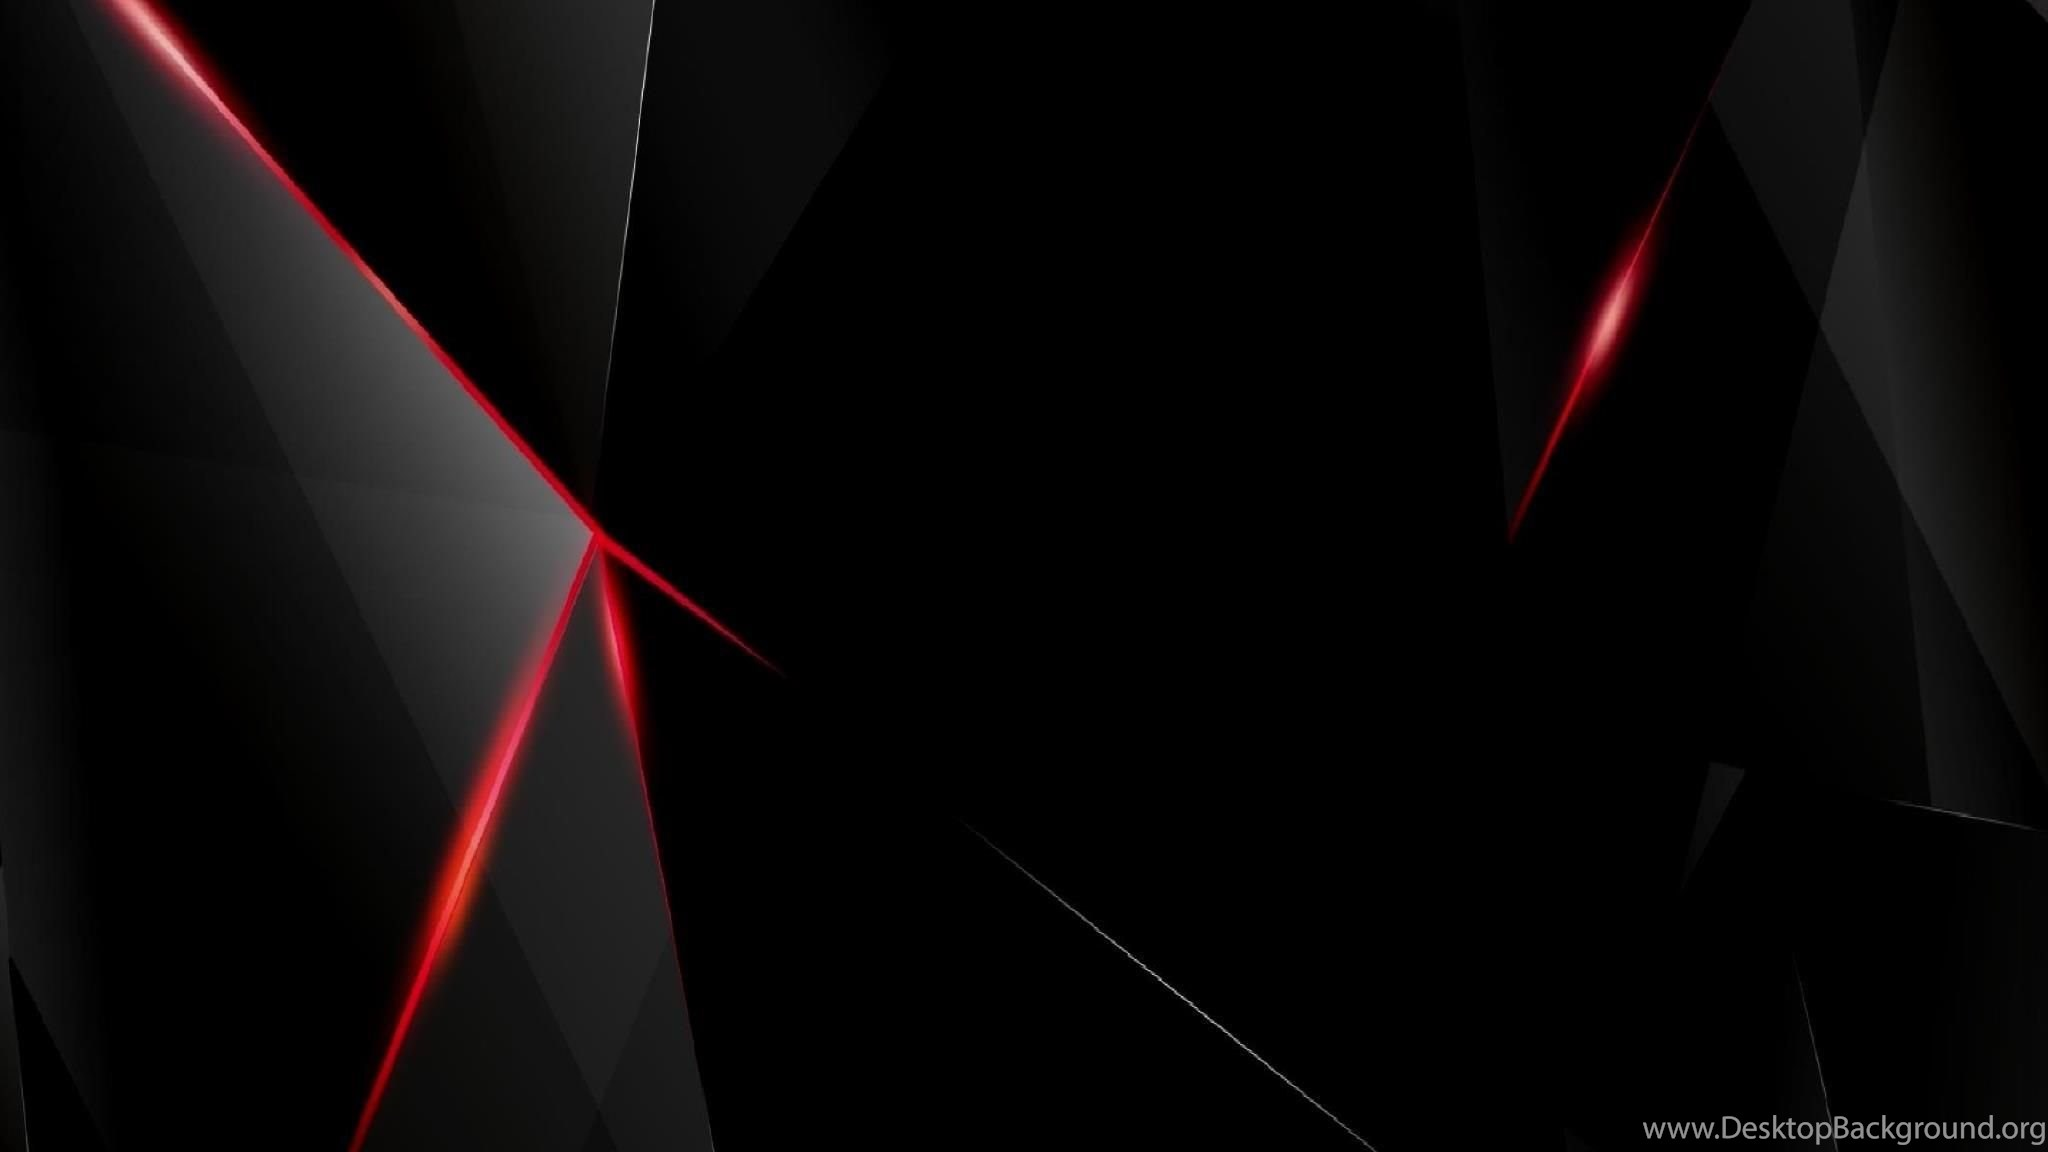 Black and red abstract wallpapers desktop background - Black red abstract wallpaper ...